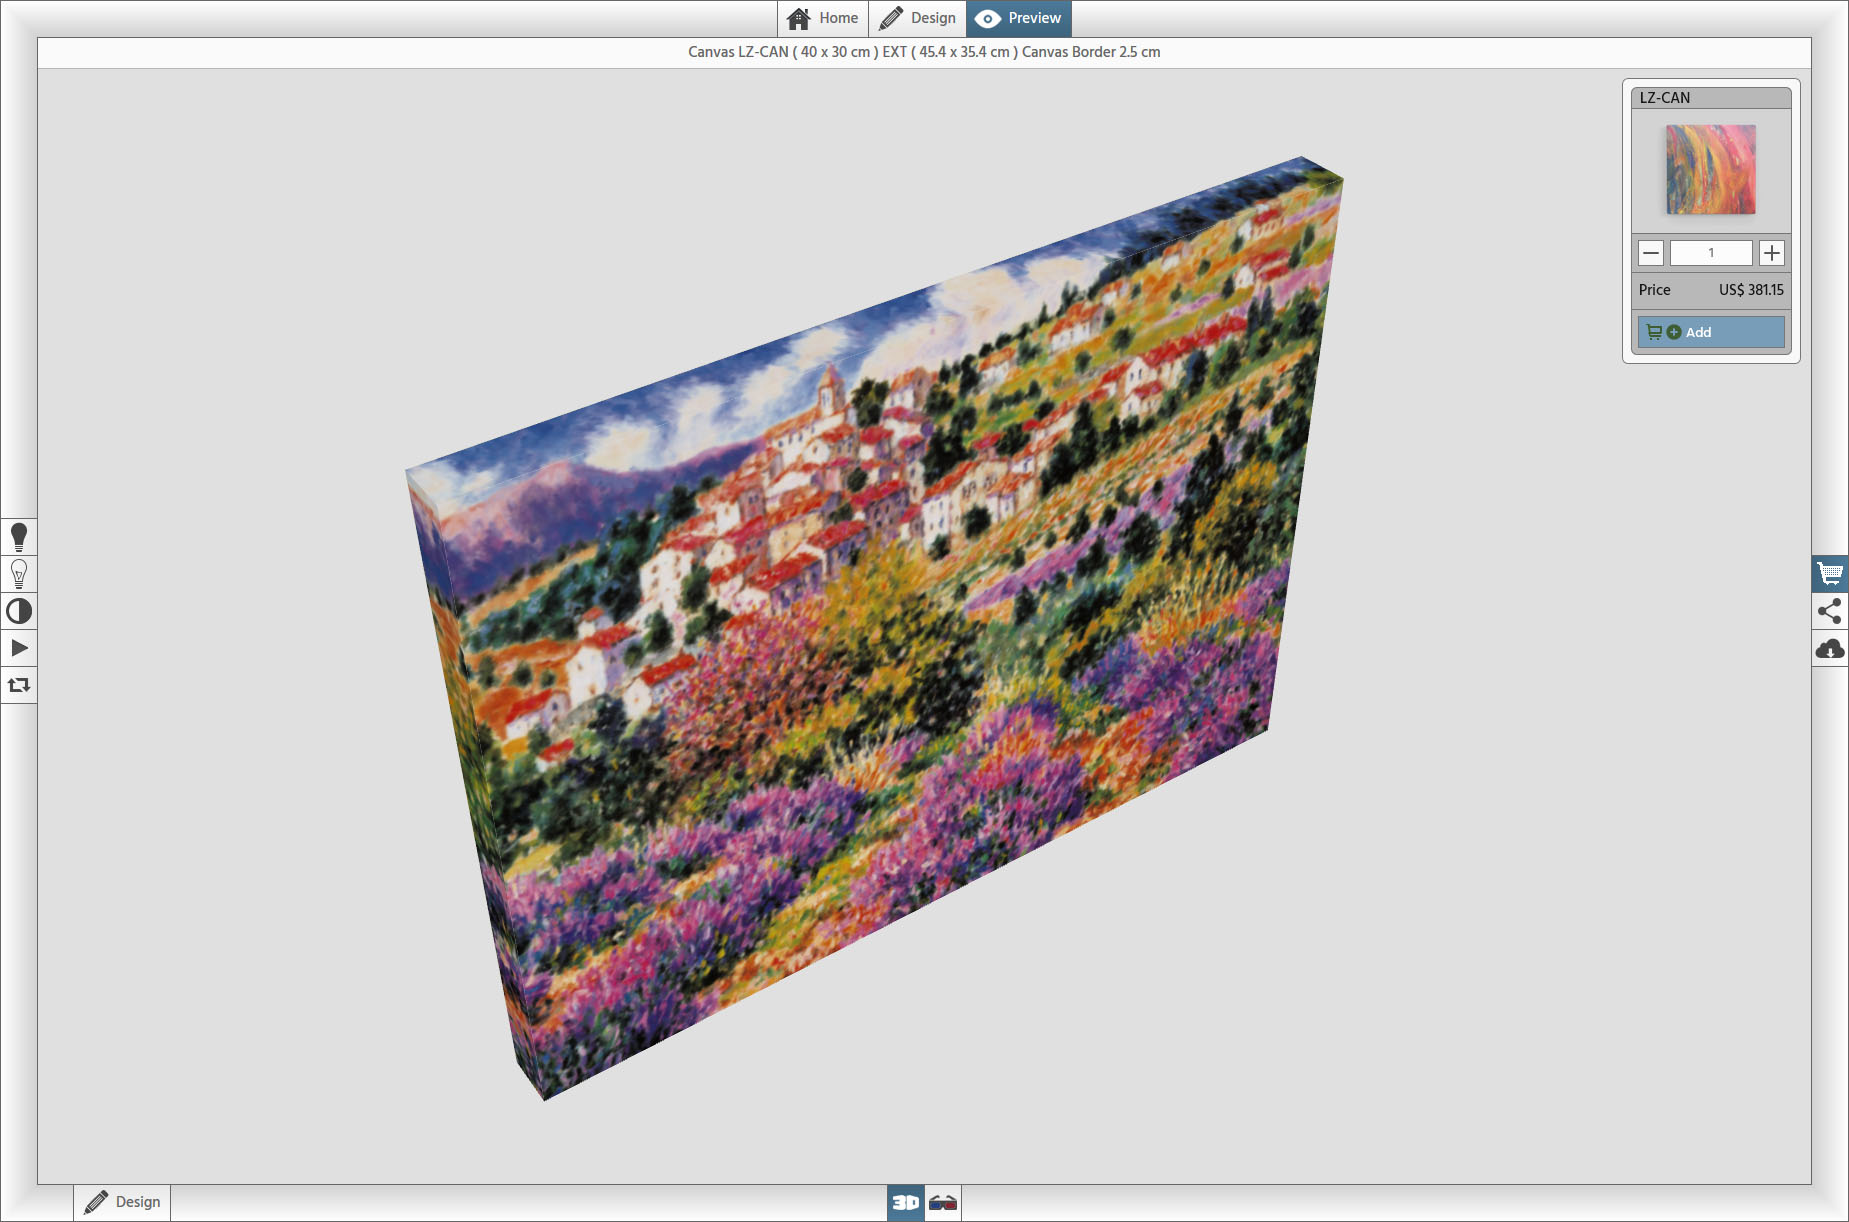 Print On Demand - Canvas 3D